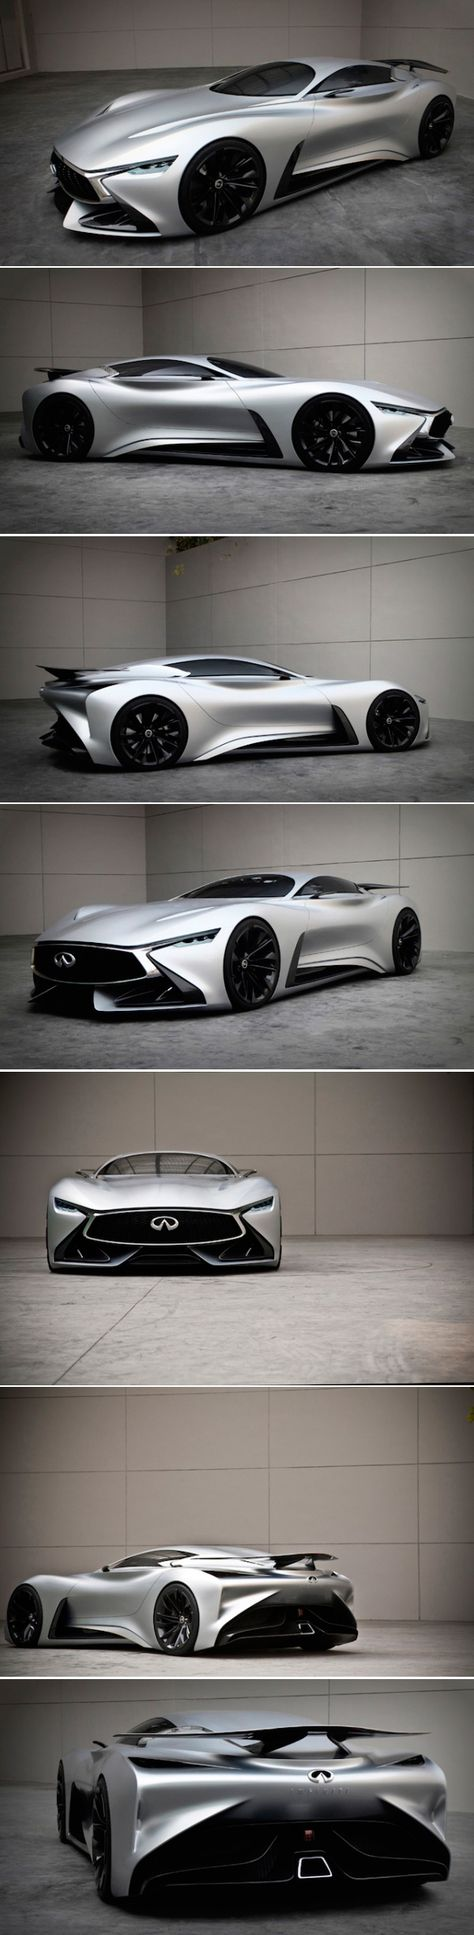 114 Best Cool Concepts Images On Pinterest   Cool Cars, Future And Wheels